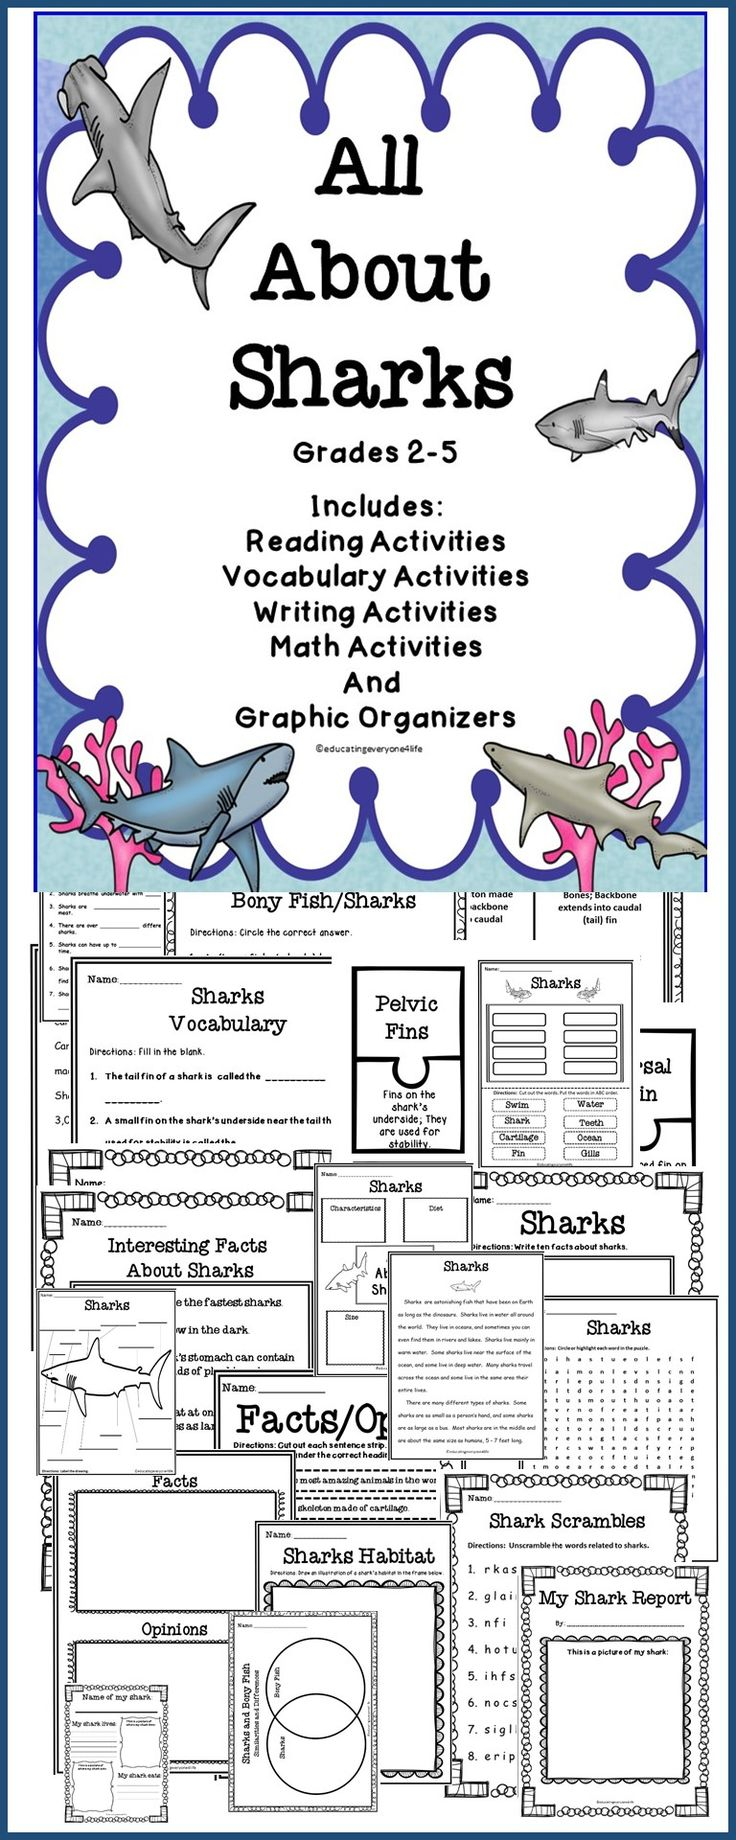 All About Sharks - An integrated unit about Sharks - Includes reading comprehension, writing, charts, graphic organizers, and more. #sharks  #science #reading